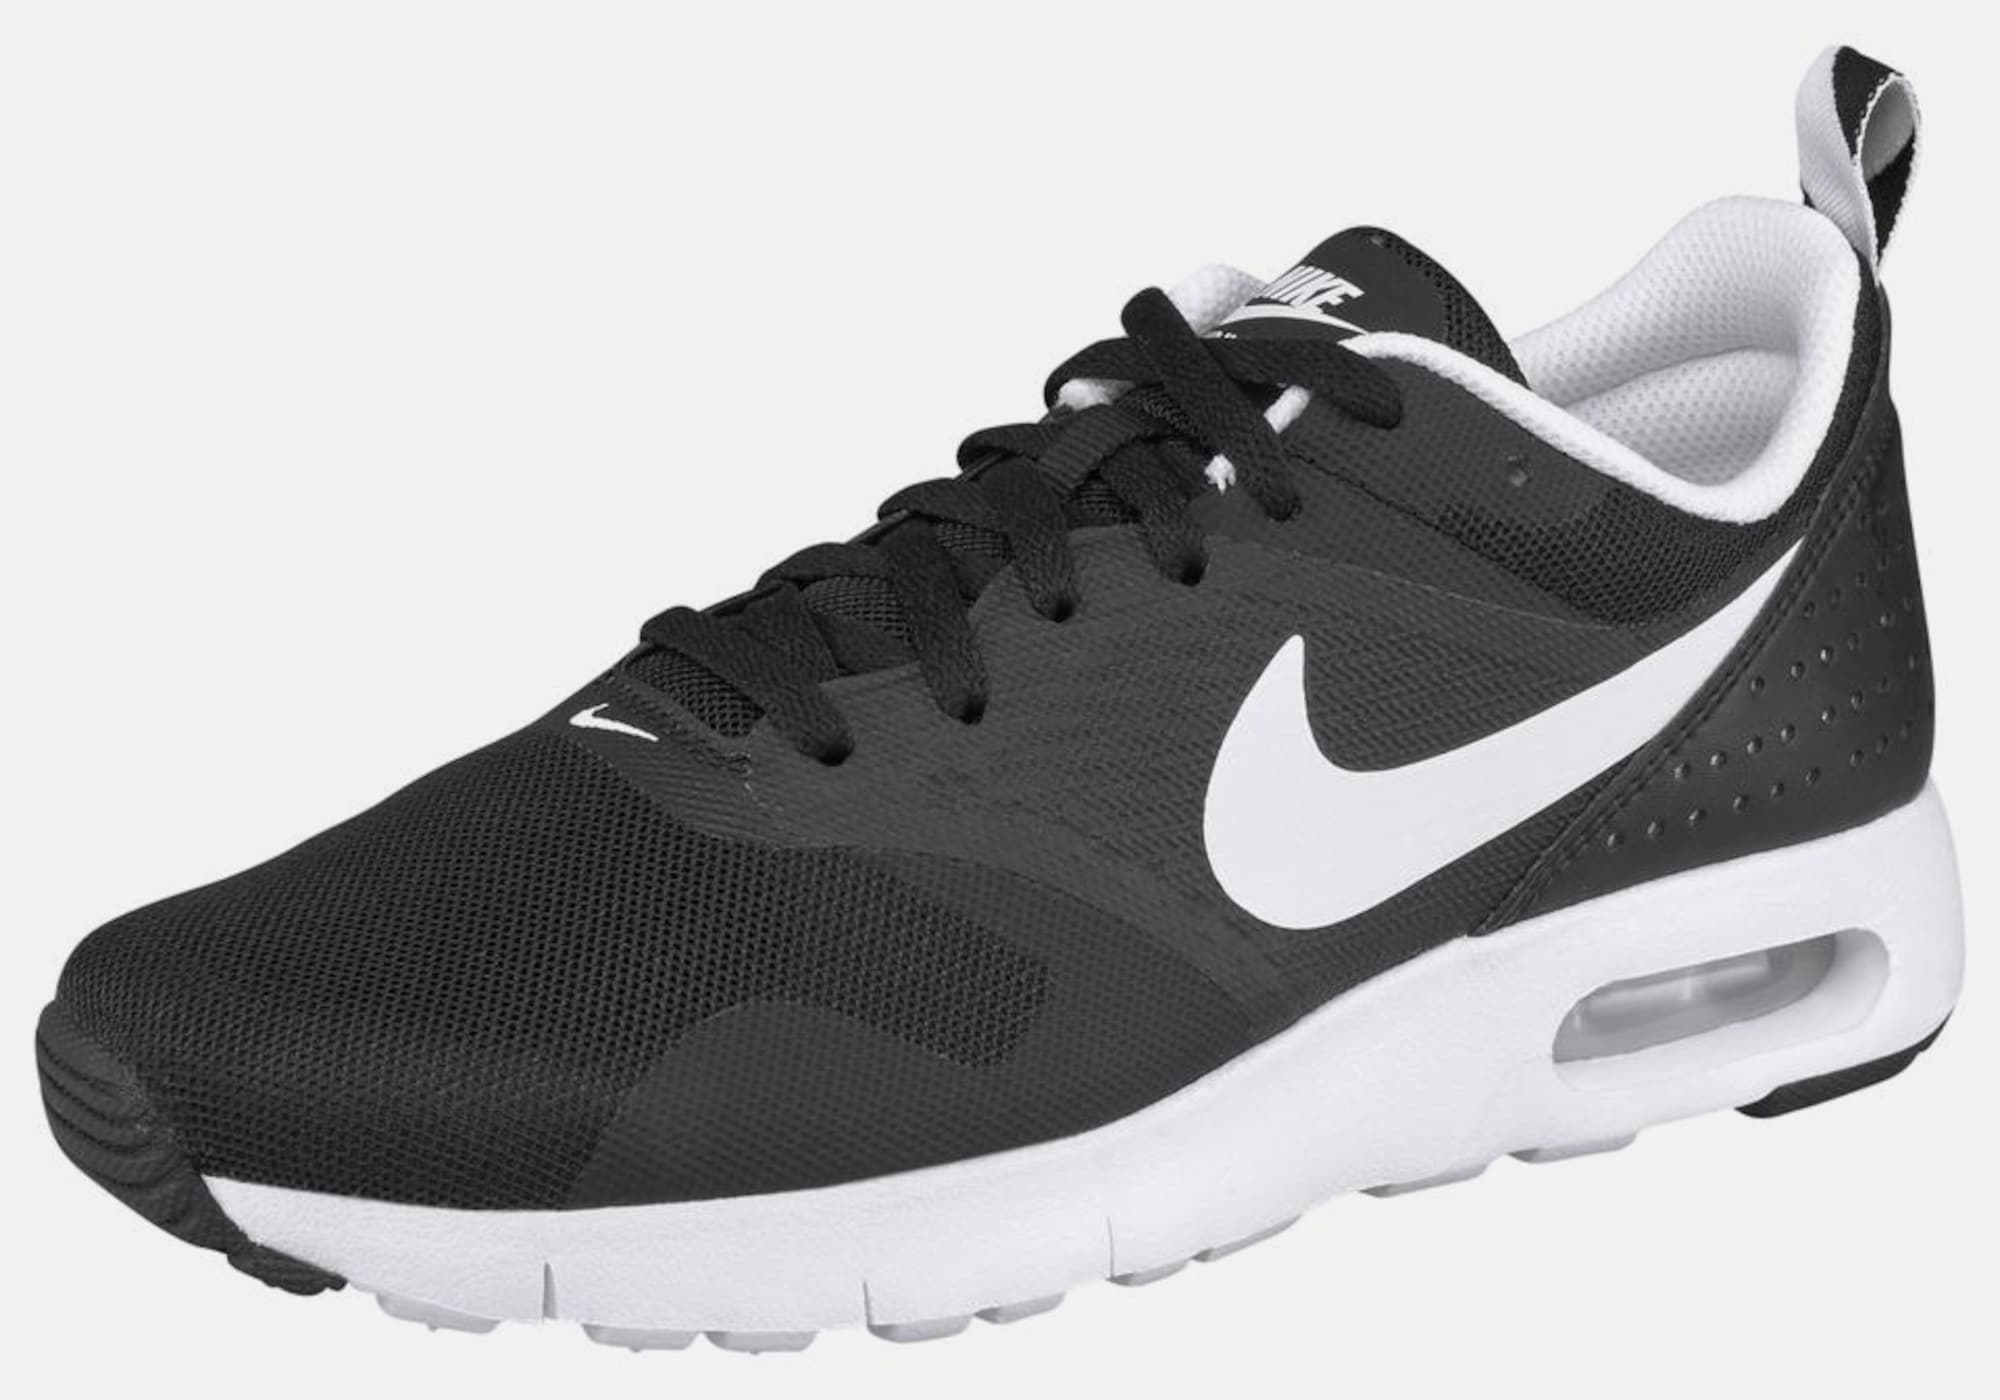 nike sportswear airmax tavas sneaker m dchen in schwarz about you. Black Bedroom Furniture Sets. Home Design Ideas